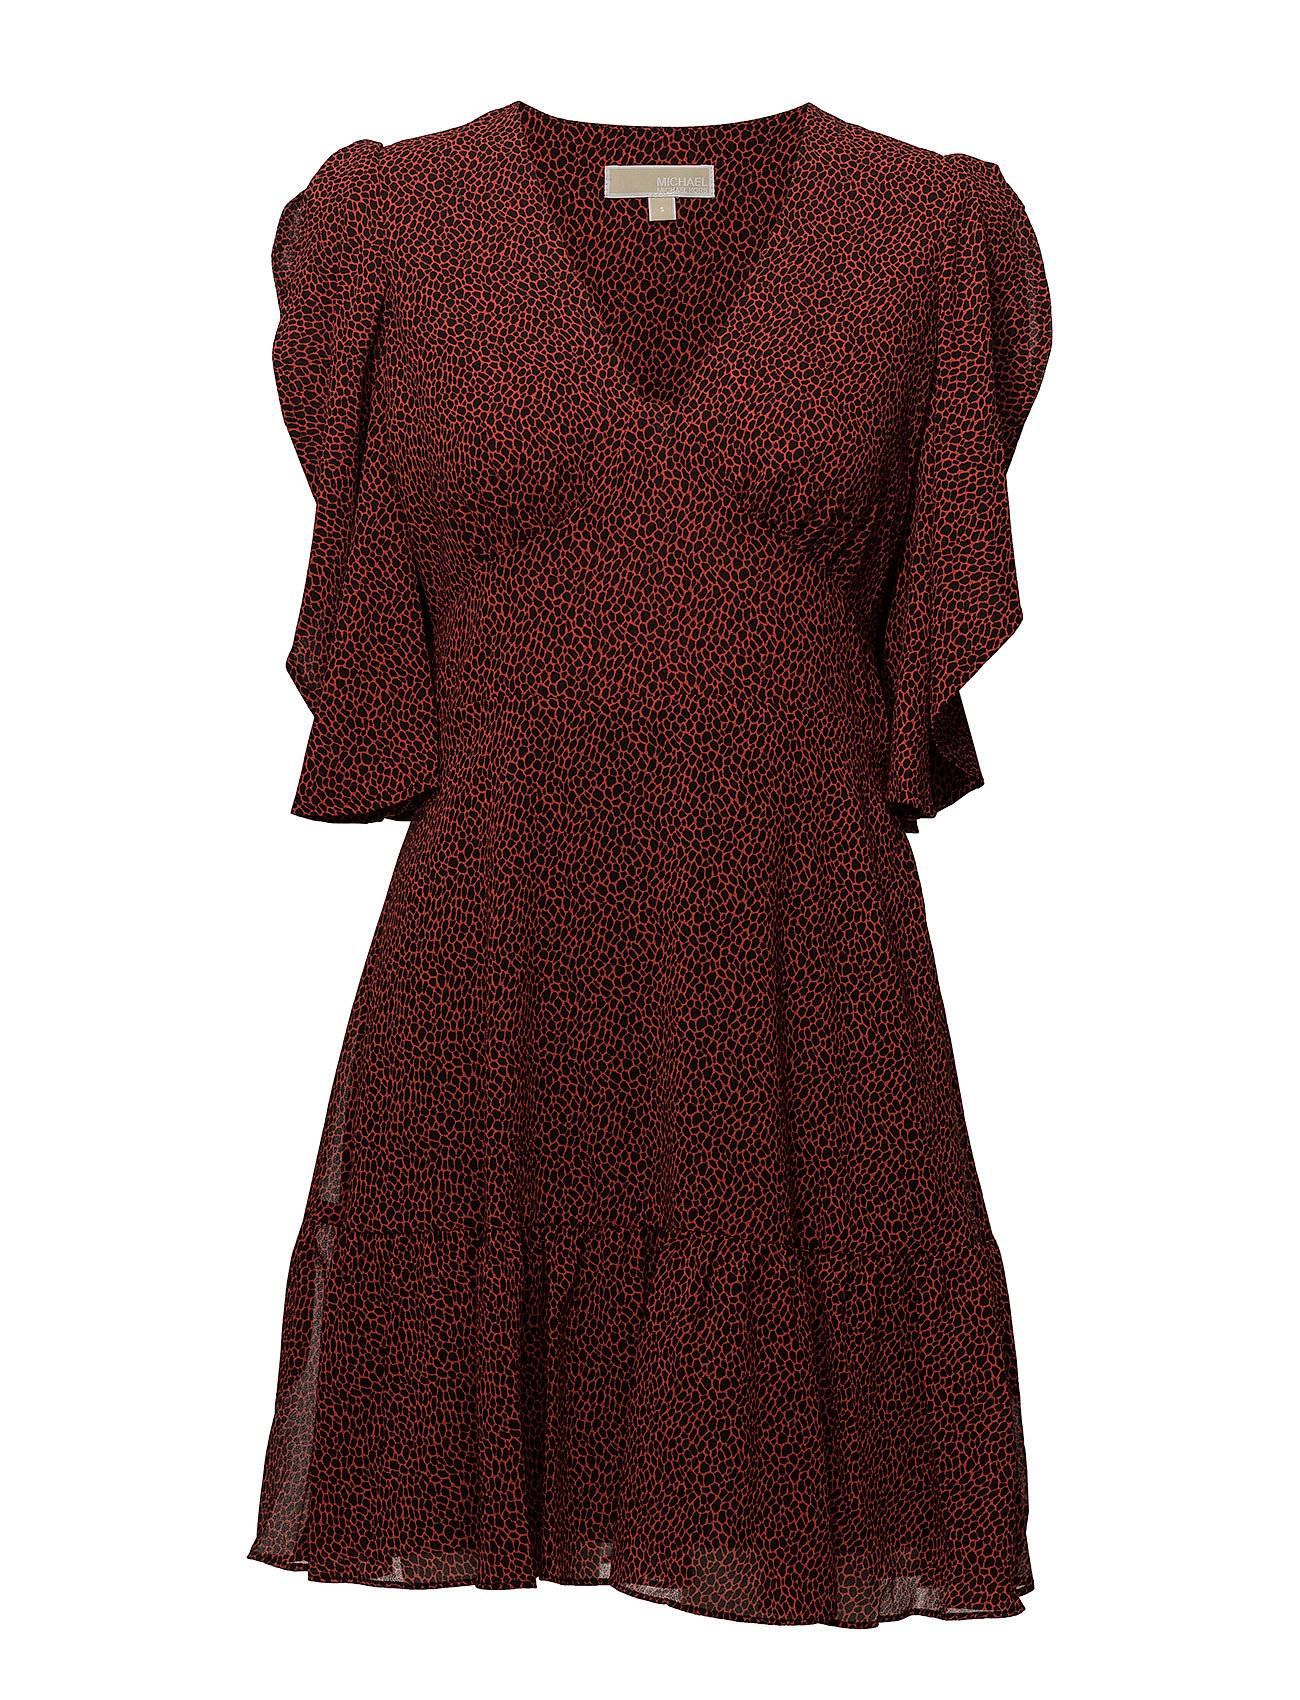 Michael Kors Cascade Slv Dress